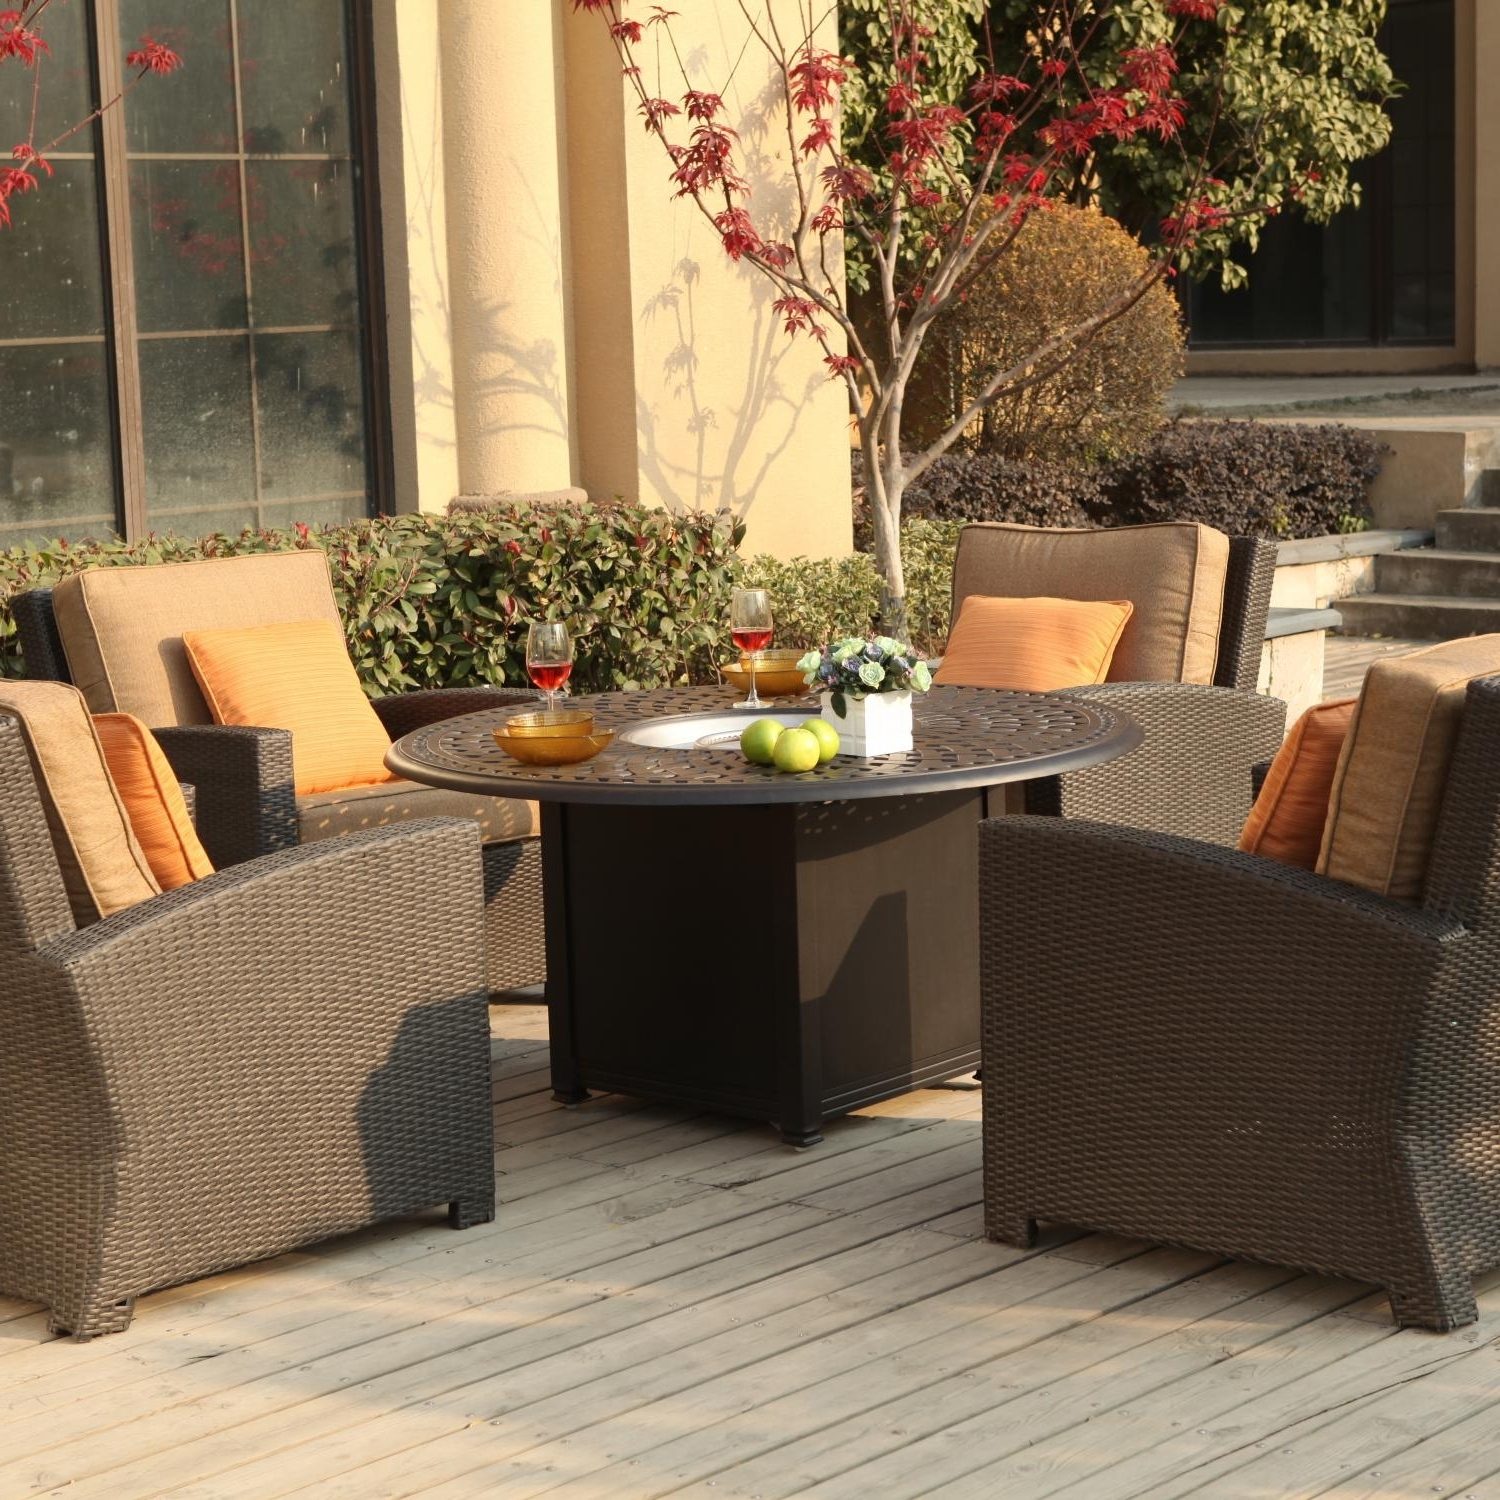 Patio Conversation Sets With Propane Fire Pit Within Most Recently Released Darlee Vienna 5 Piece Resin Wicker Patio Fire Pit Set (View 10 of 20)